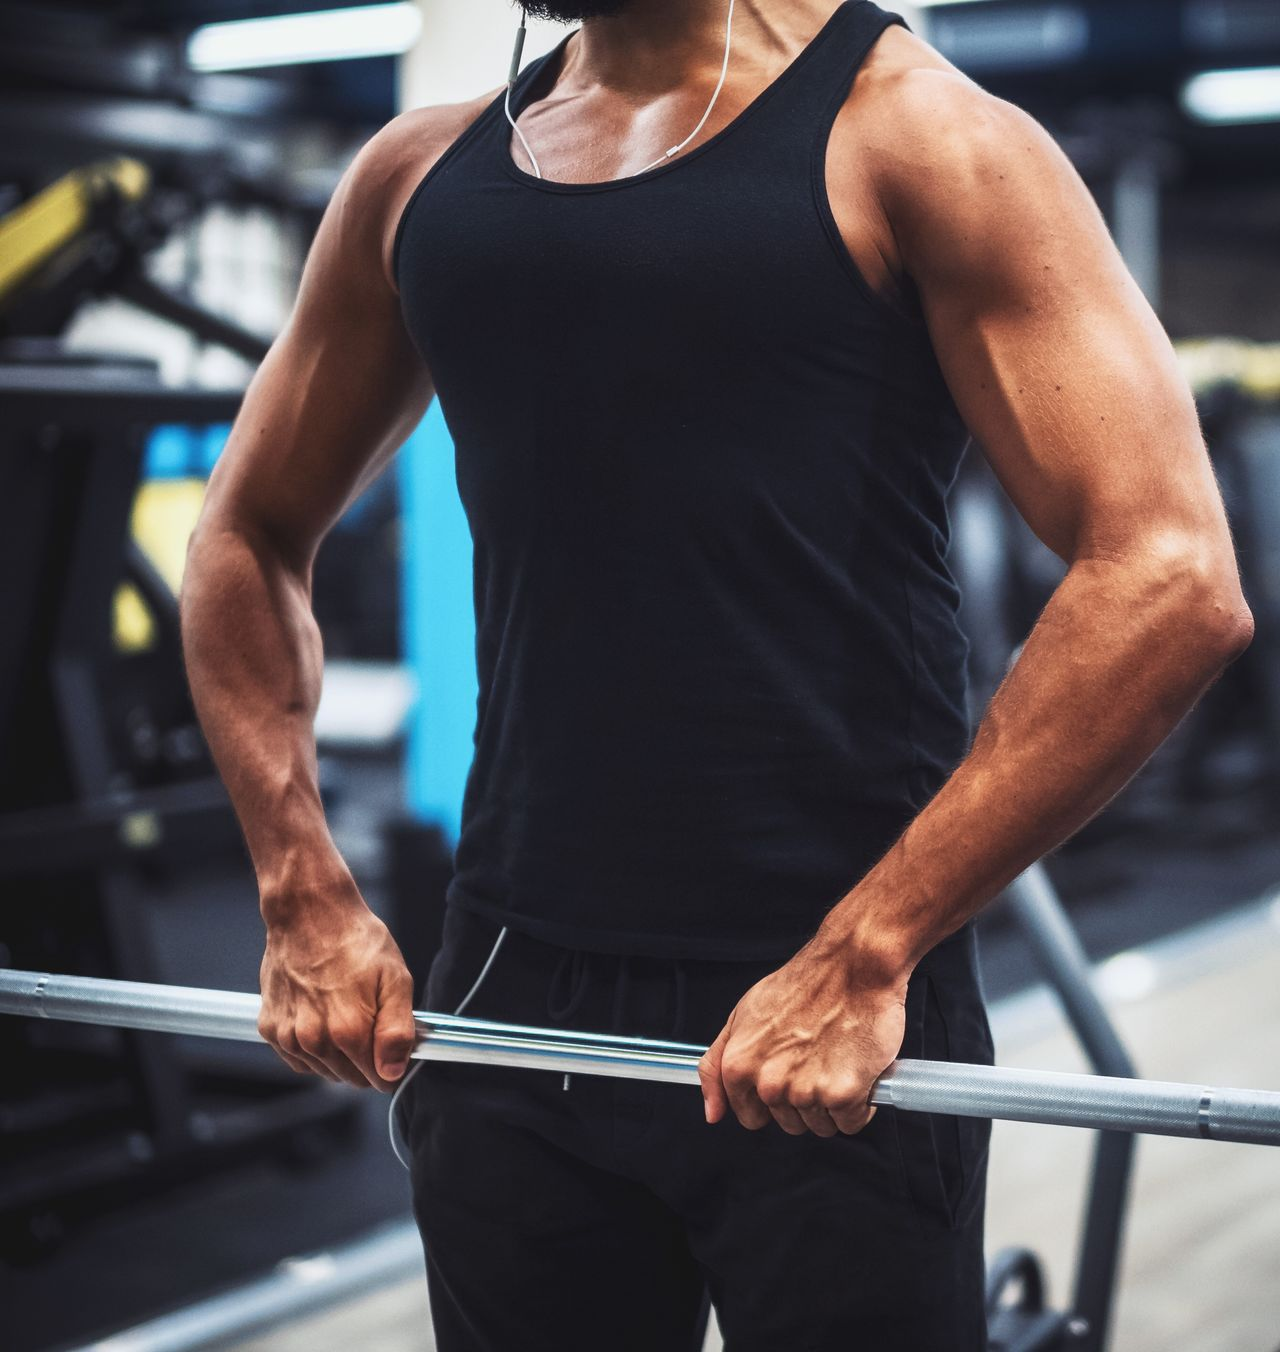 Athlete Bodybuilding Calories Endurance Fit Fitness Force Gym Man Muscle Muscular Build Power Ripped Shoulders Sweat Training Triceps Working Out